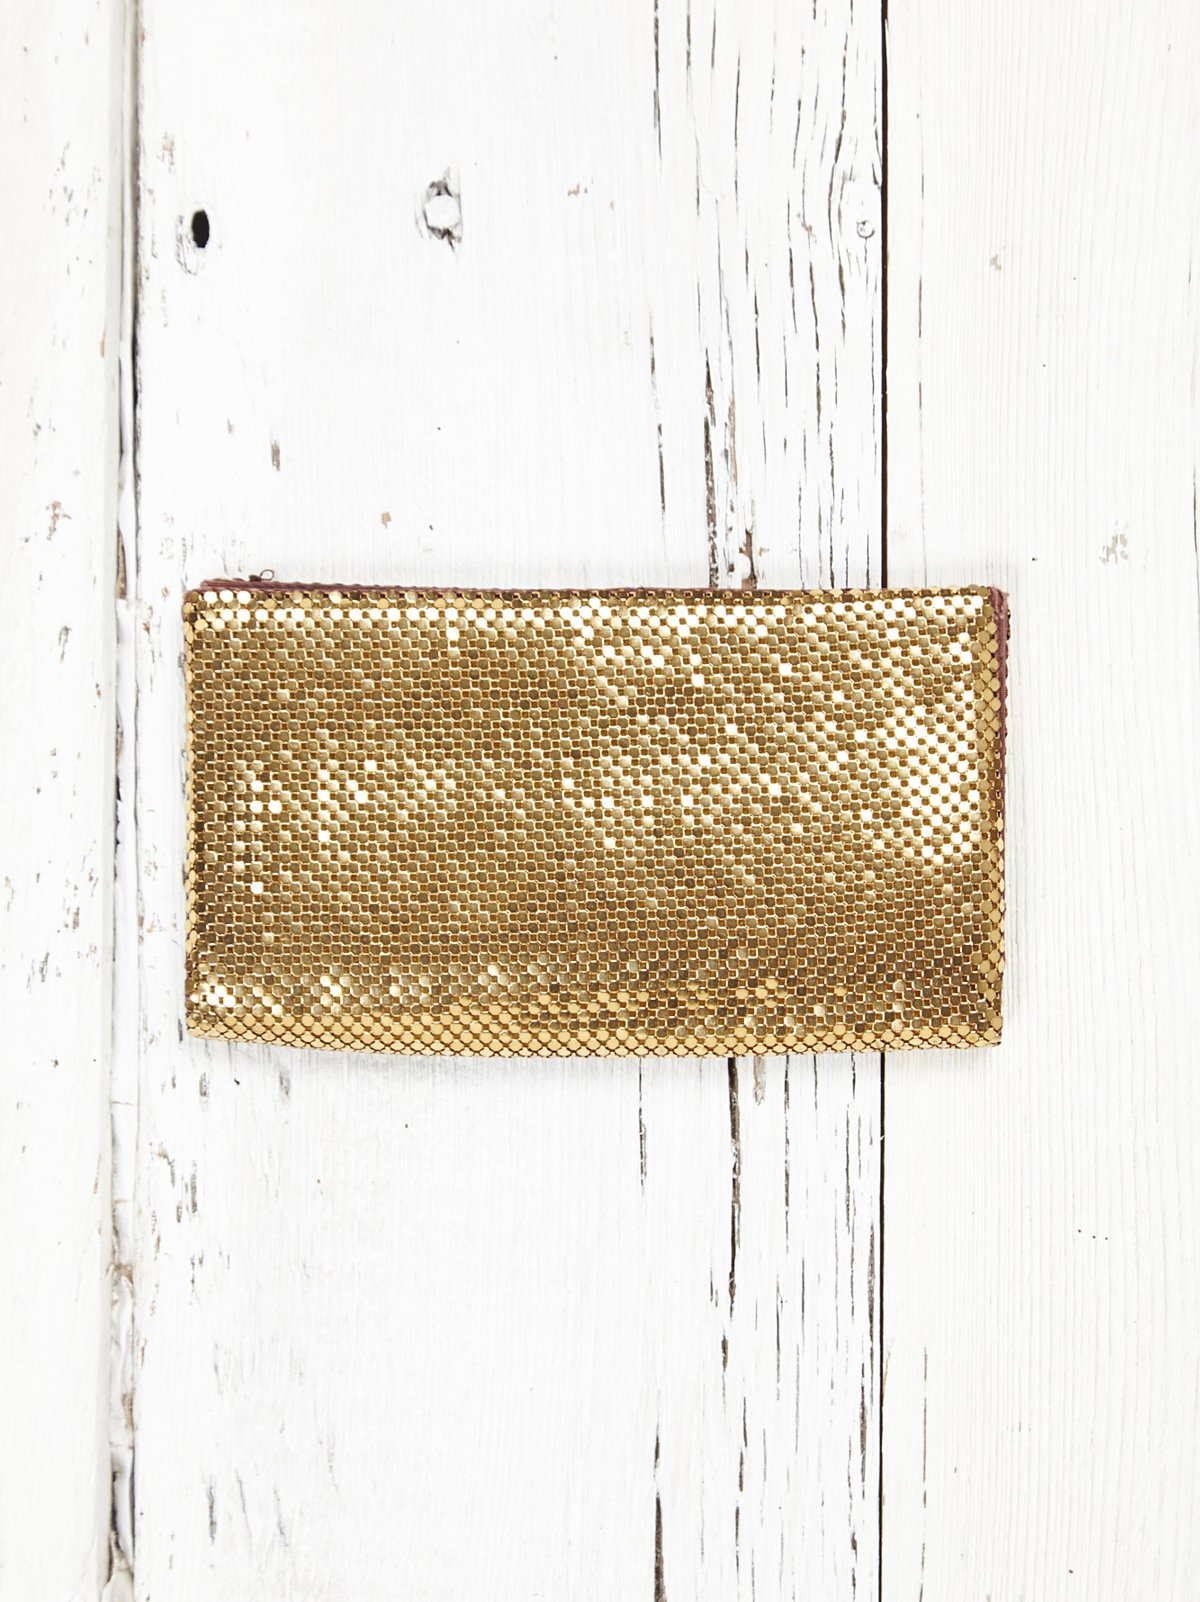 Vintage Whiting and Davis Gold Metal Wallet